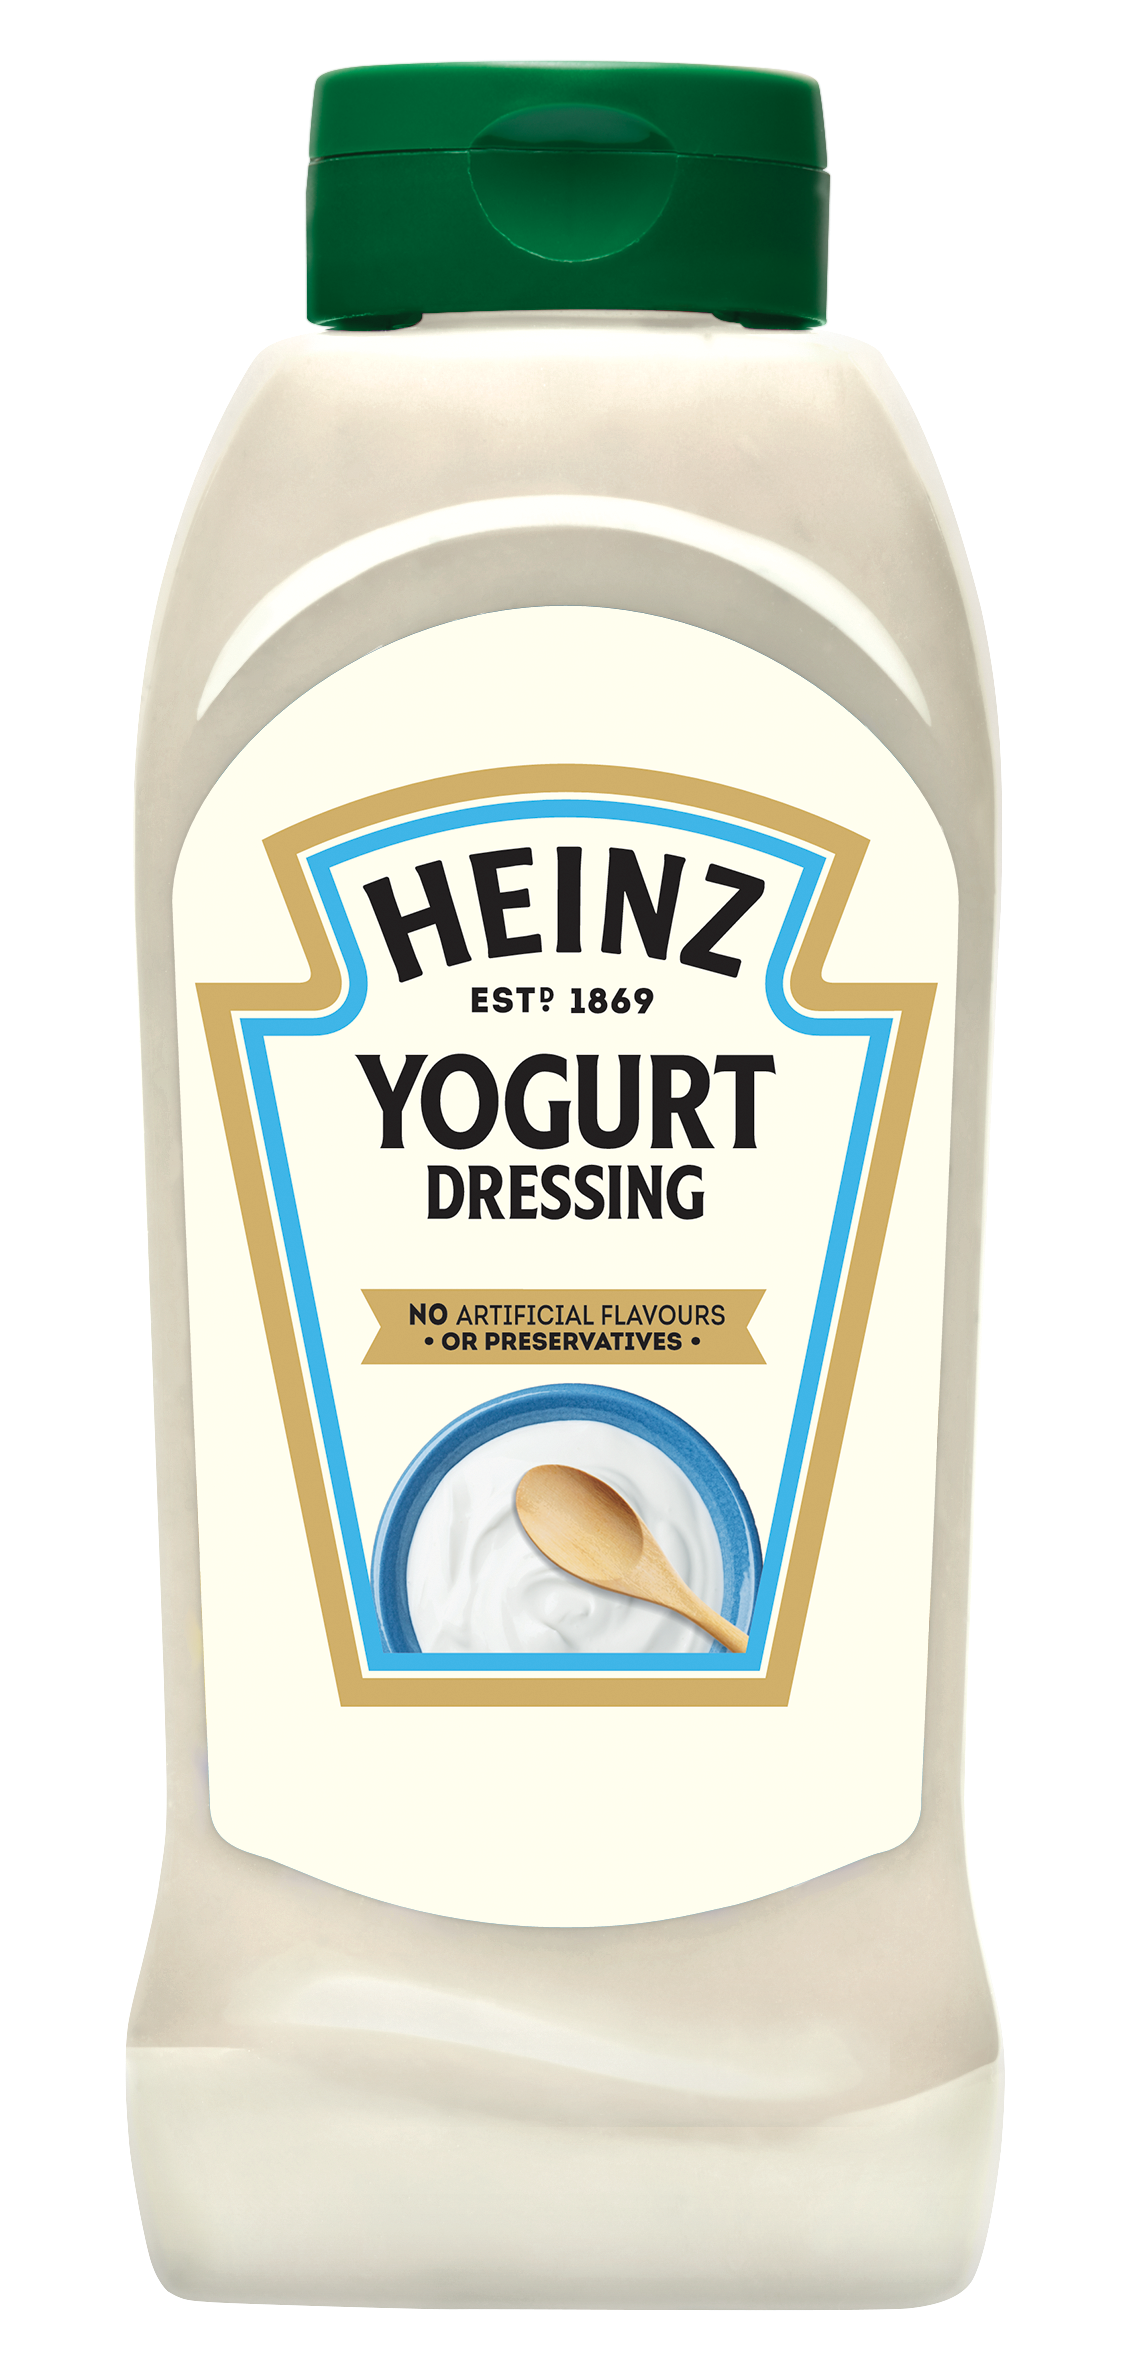 Heinz Yoghurt Dressing 800ml Up Right image